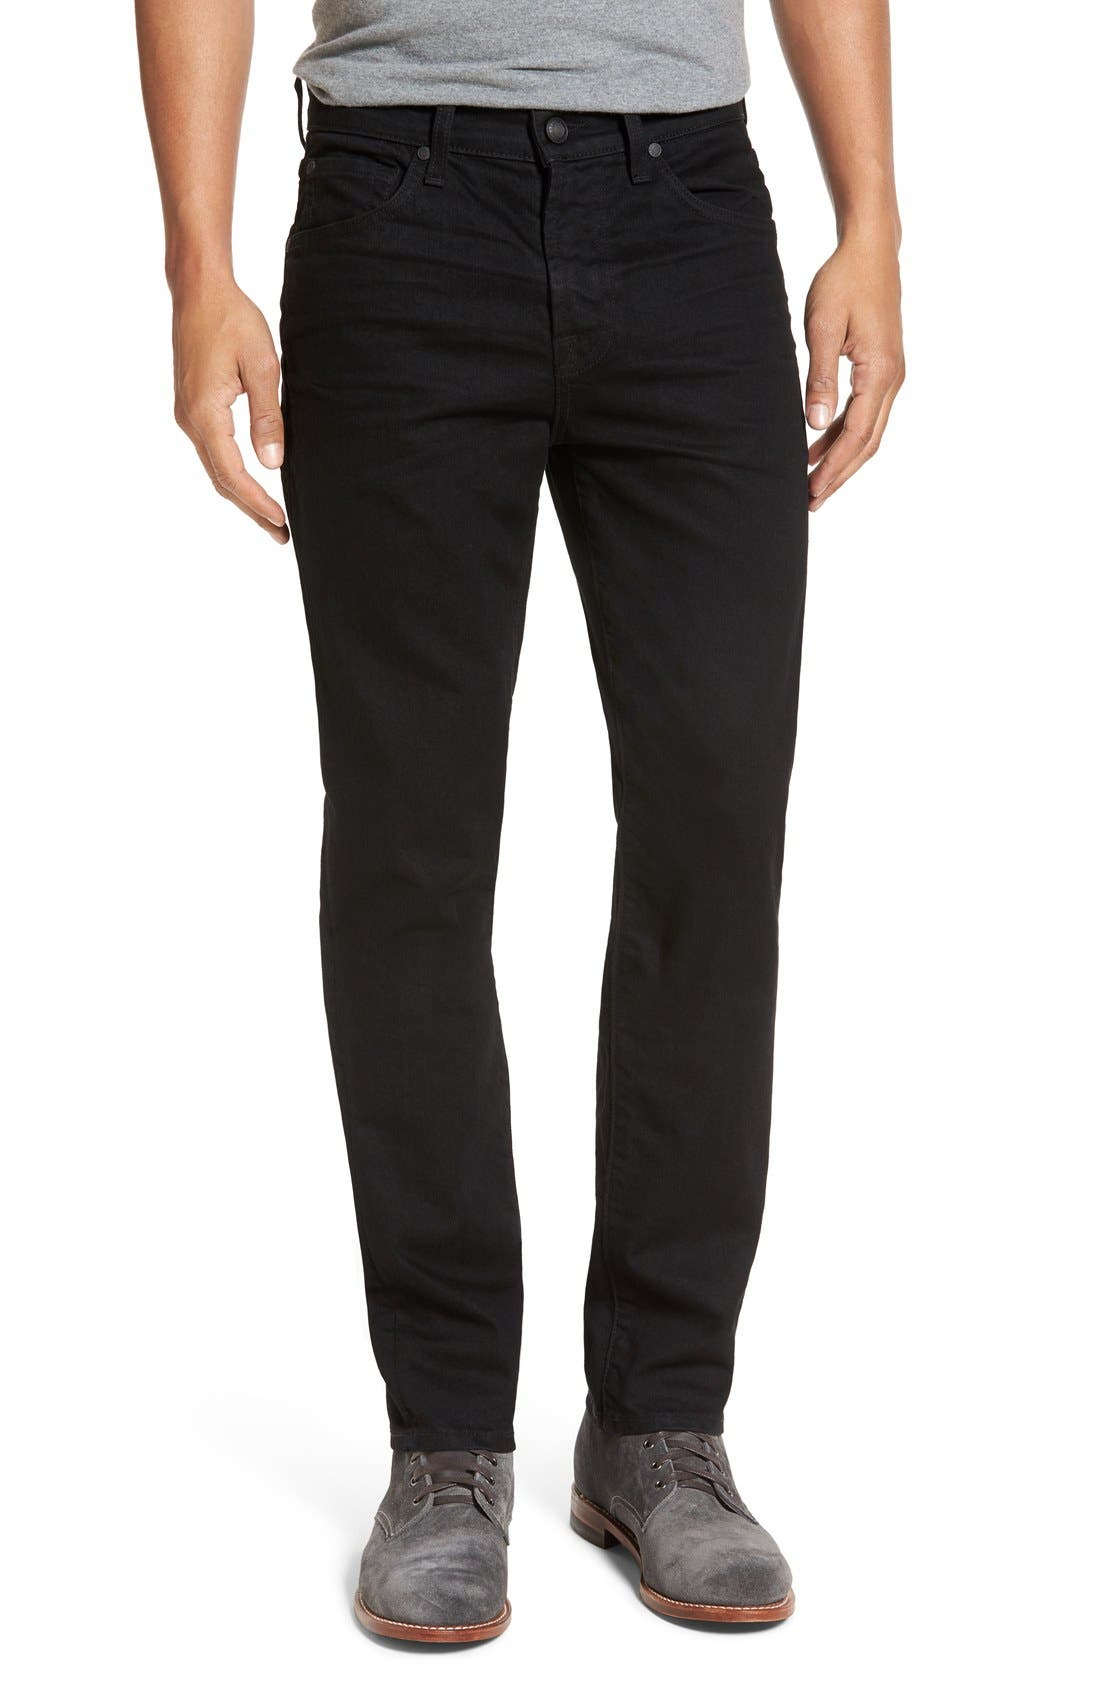 Alternate Image 1 Selected - 7 For All Mankind® Slimmy Slim Fit Jeans (Towne Black)